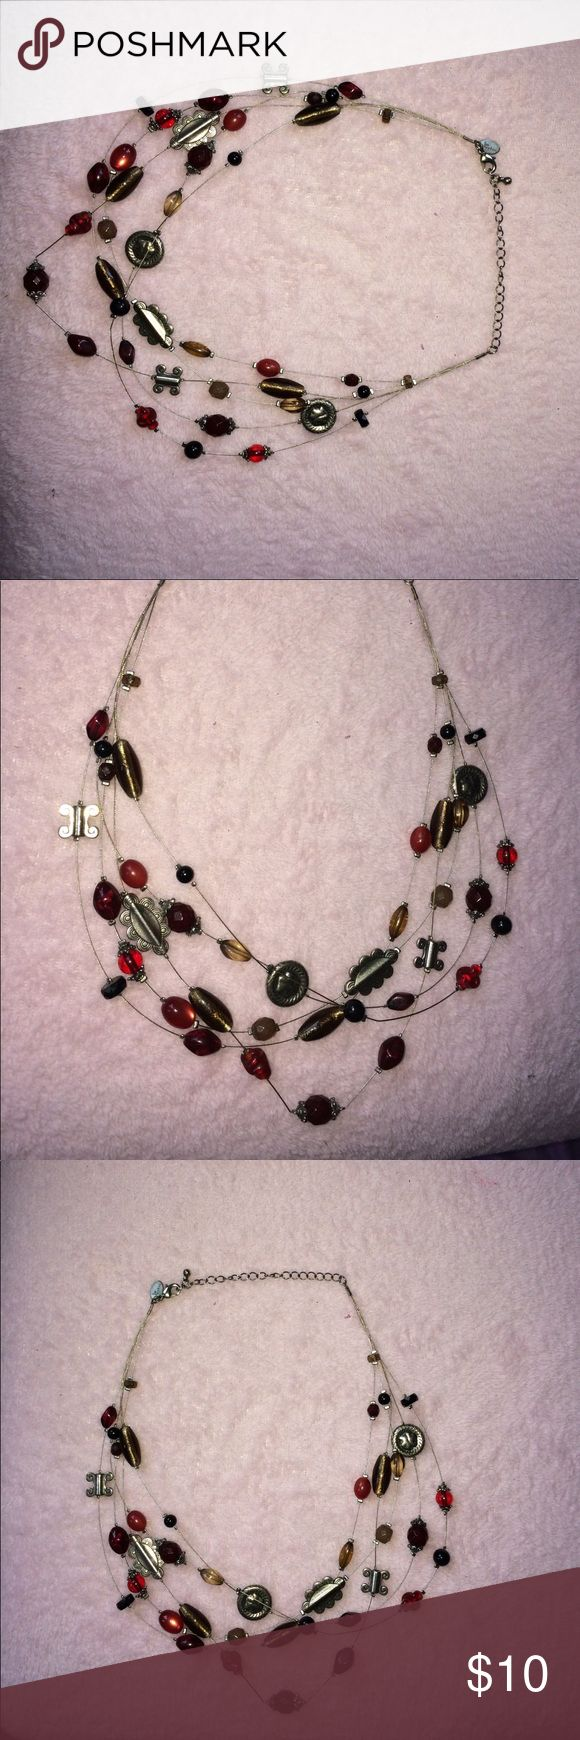 Lia Sophia beaded statement necklace  This necklace is NWOT! It has brown, black, red, and silver beads around a sterling silver necklace! Super cute and versatile Lia Sophia Jewelry Necklaces